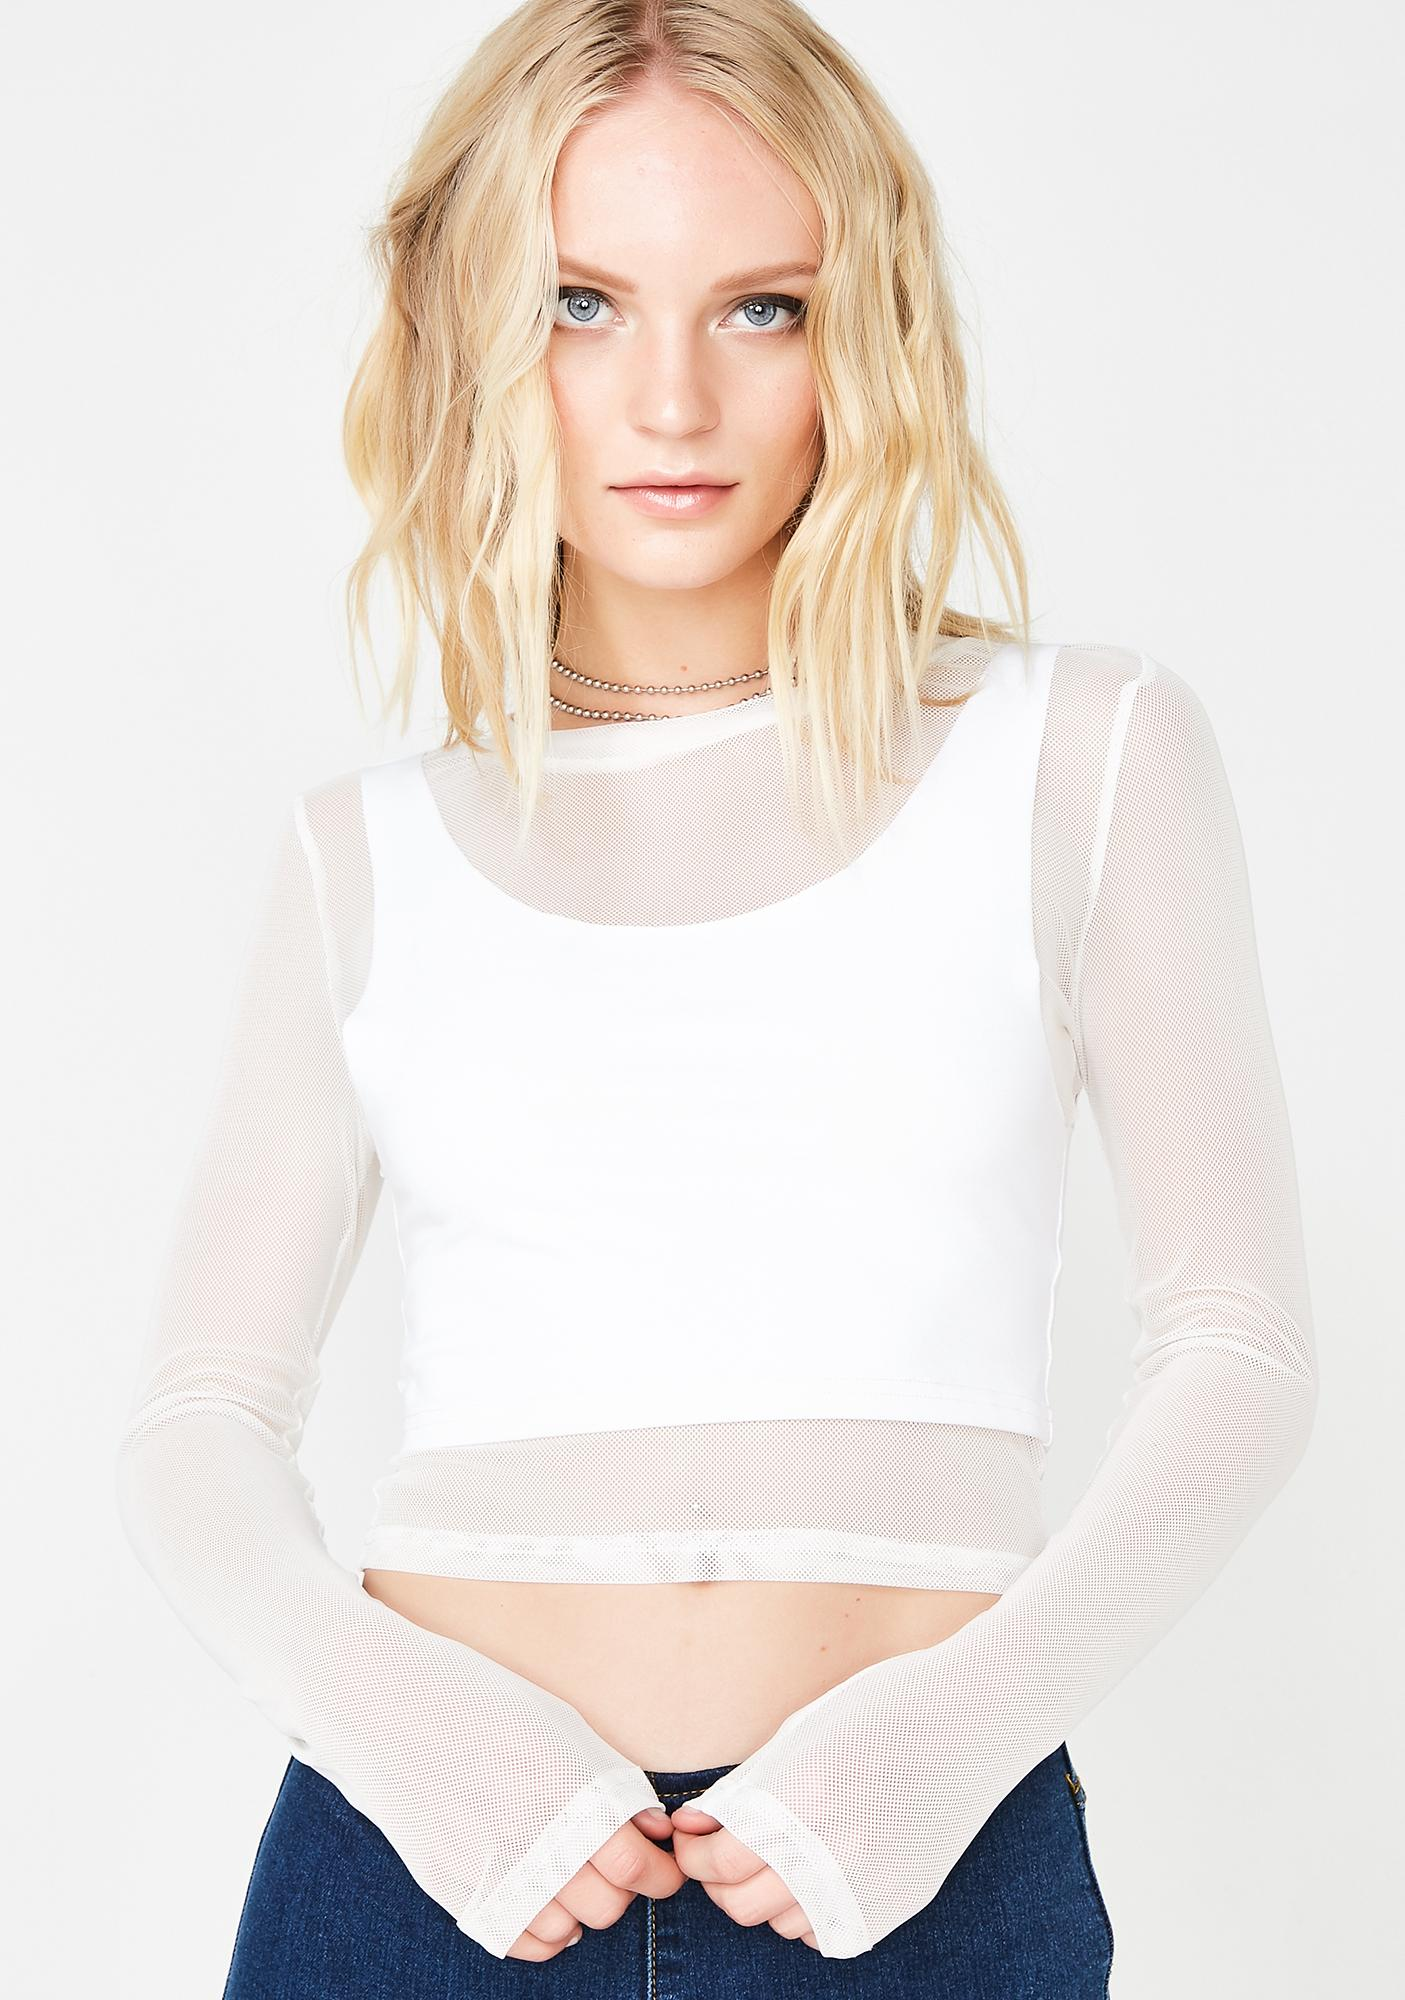 Hello Stranger Mesh Top